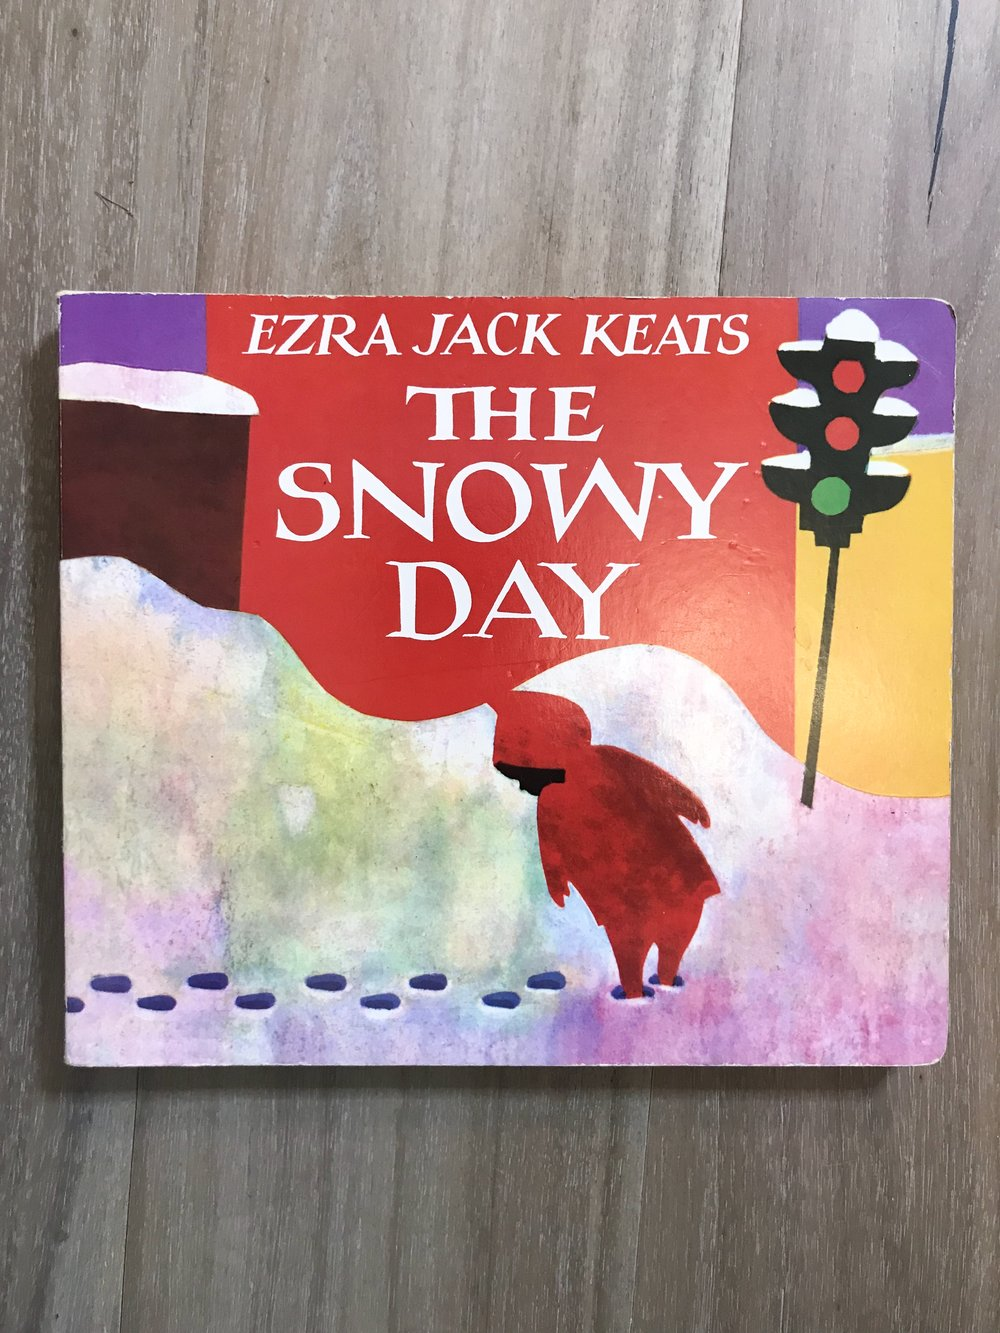 This book was another purchase when Elle was little just to add more representation to our children's library. It's also a classic book as well.